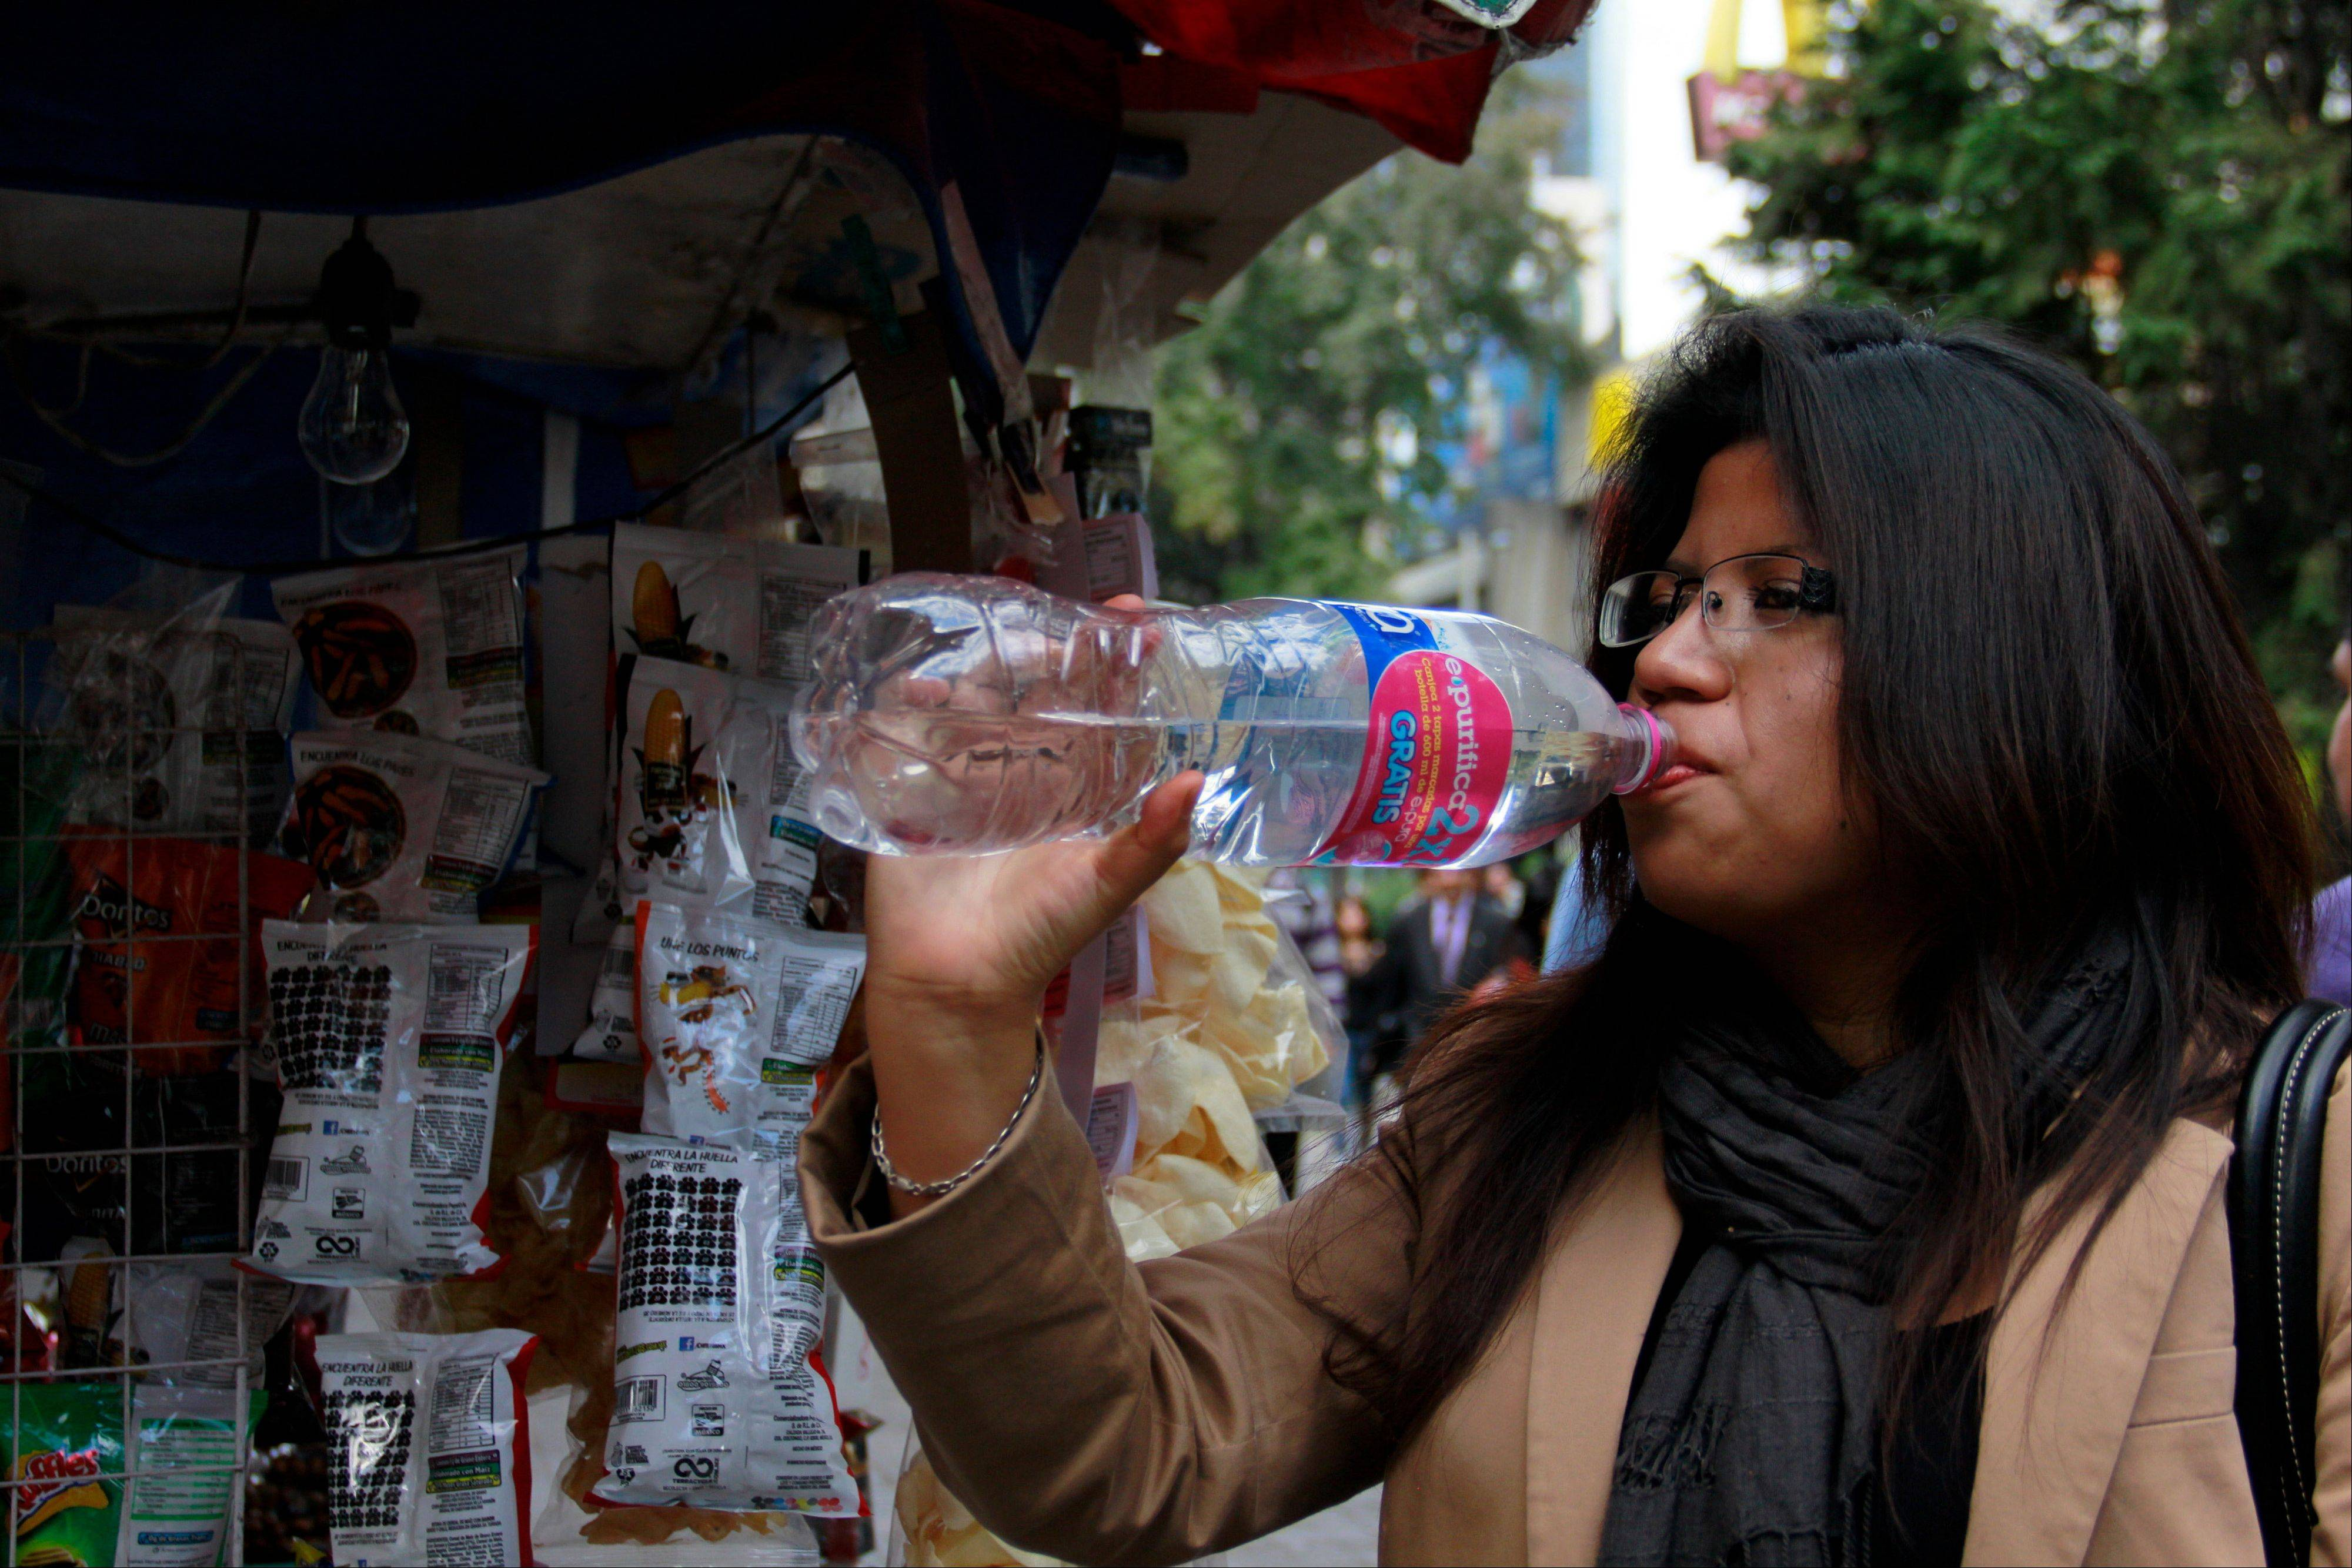 Bad tap water accounts in part for Mexico being the highest consumer of bottled water and sweetened drinks. A law recently approved by Mexico City�s legislators will require all restaurants to install filters, offering patrons free, apparently drinkable potable water that won�t lead to stomach problems and other ailments.